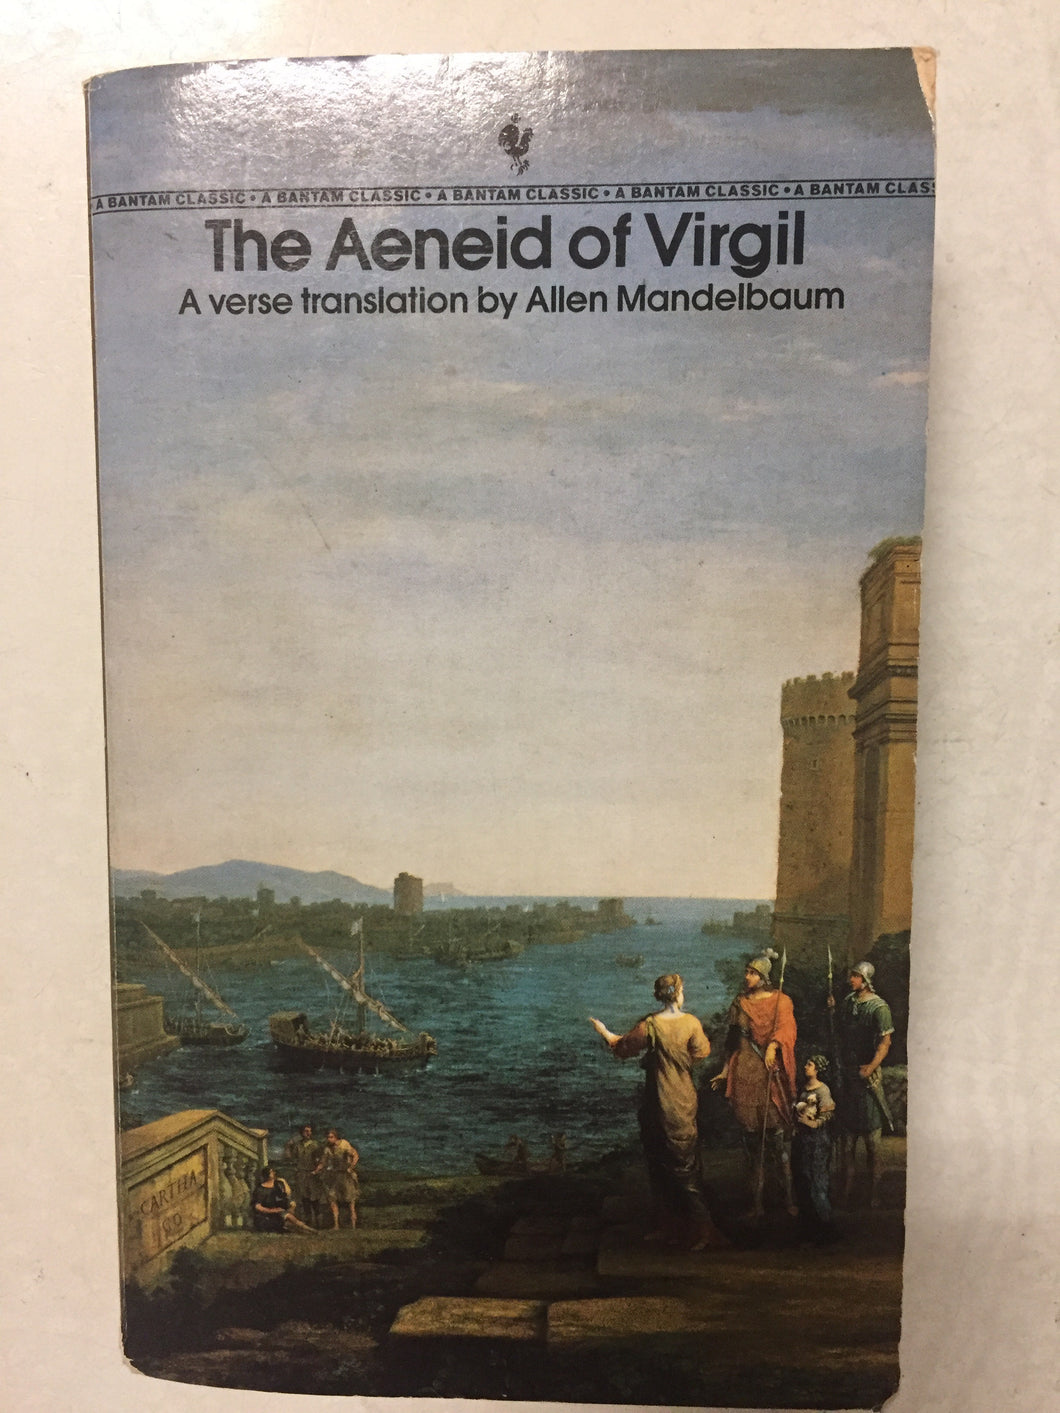 The Aeneid of Virgil - Slickcatbooks